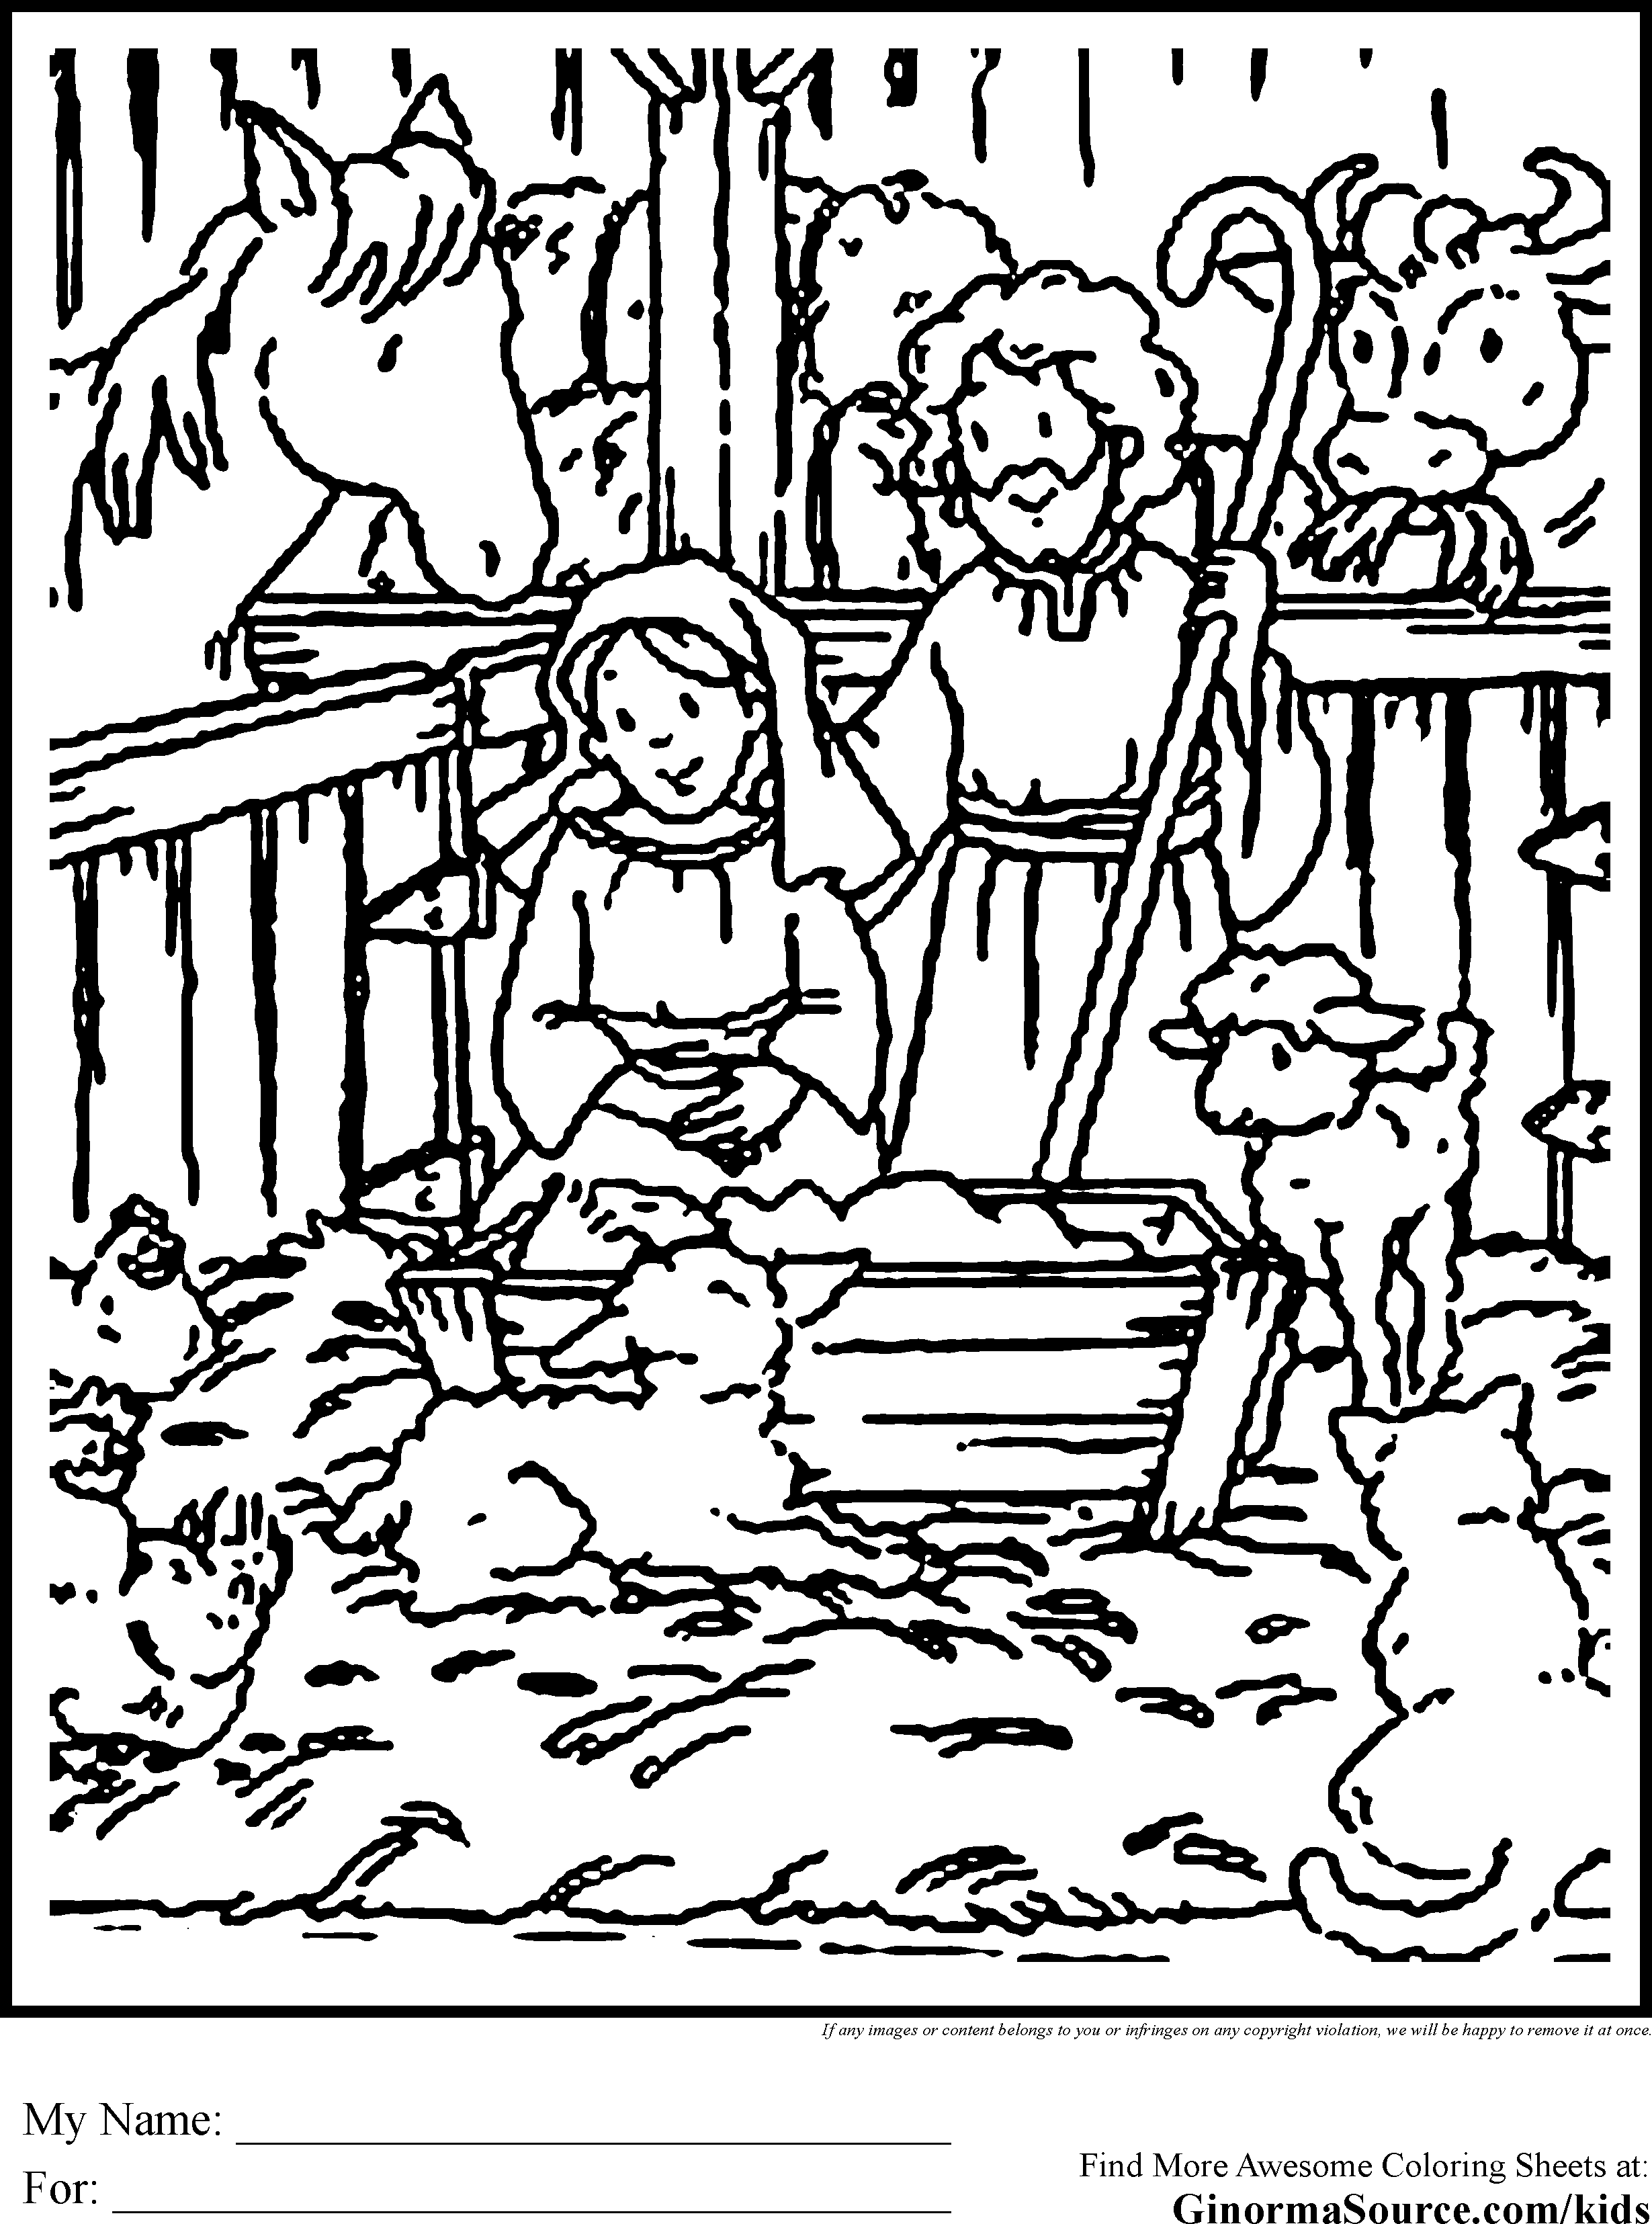 Coloring Pages Mary And Joseph Coloring Pages coloring page of joesph and mary az pages joseph hicoloringpages a real mom adapts truth in the tinsel for little kids